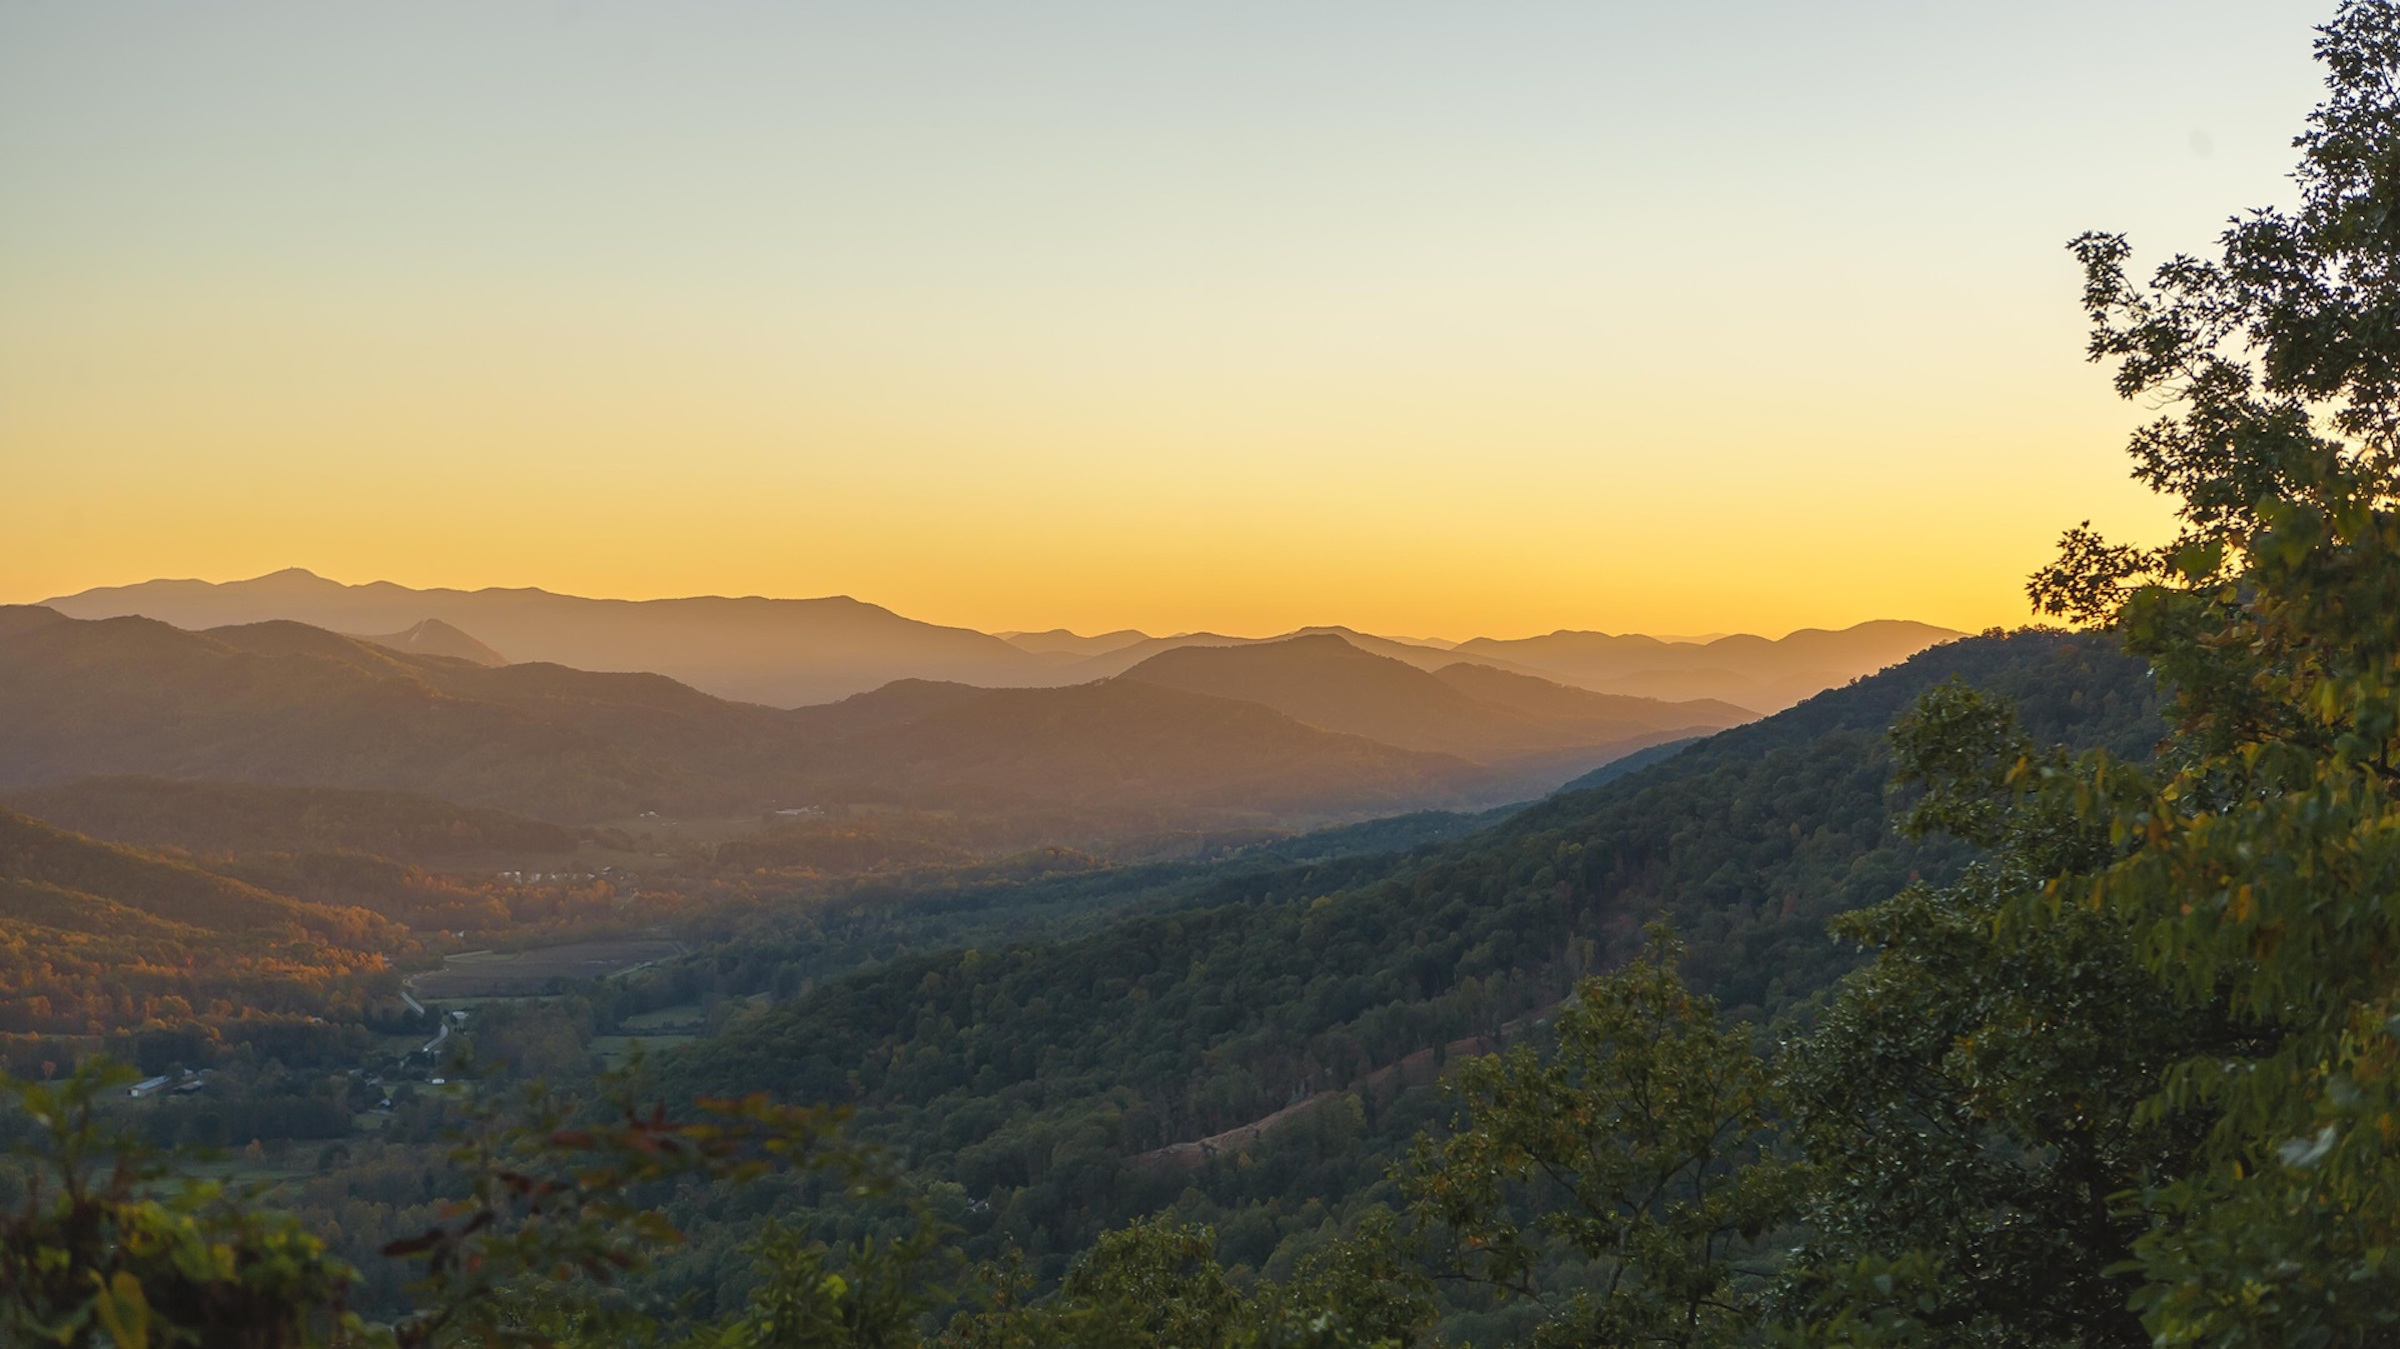 Georgia road trips from Atlanta deliver views of the Blue Ridge Mountains.